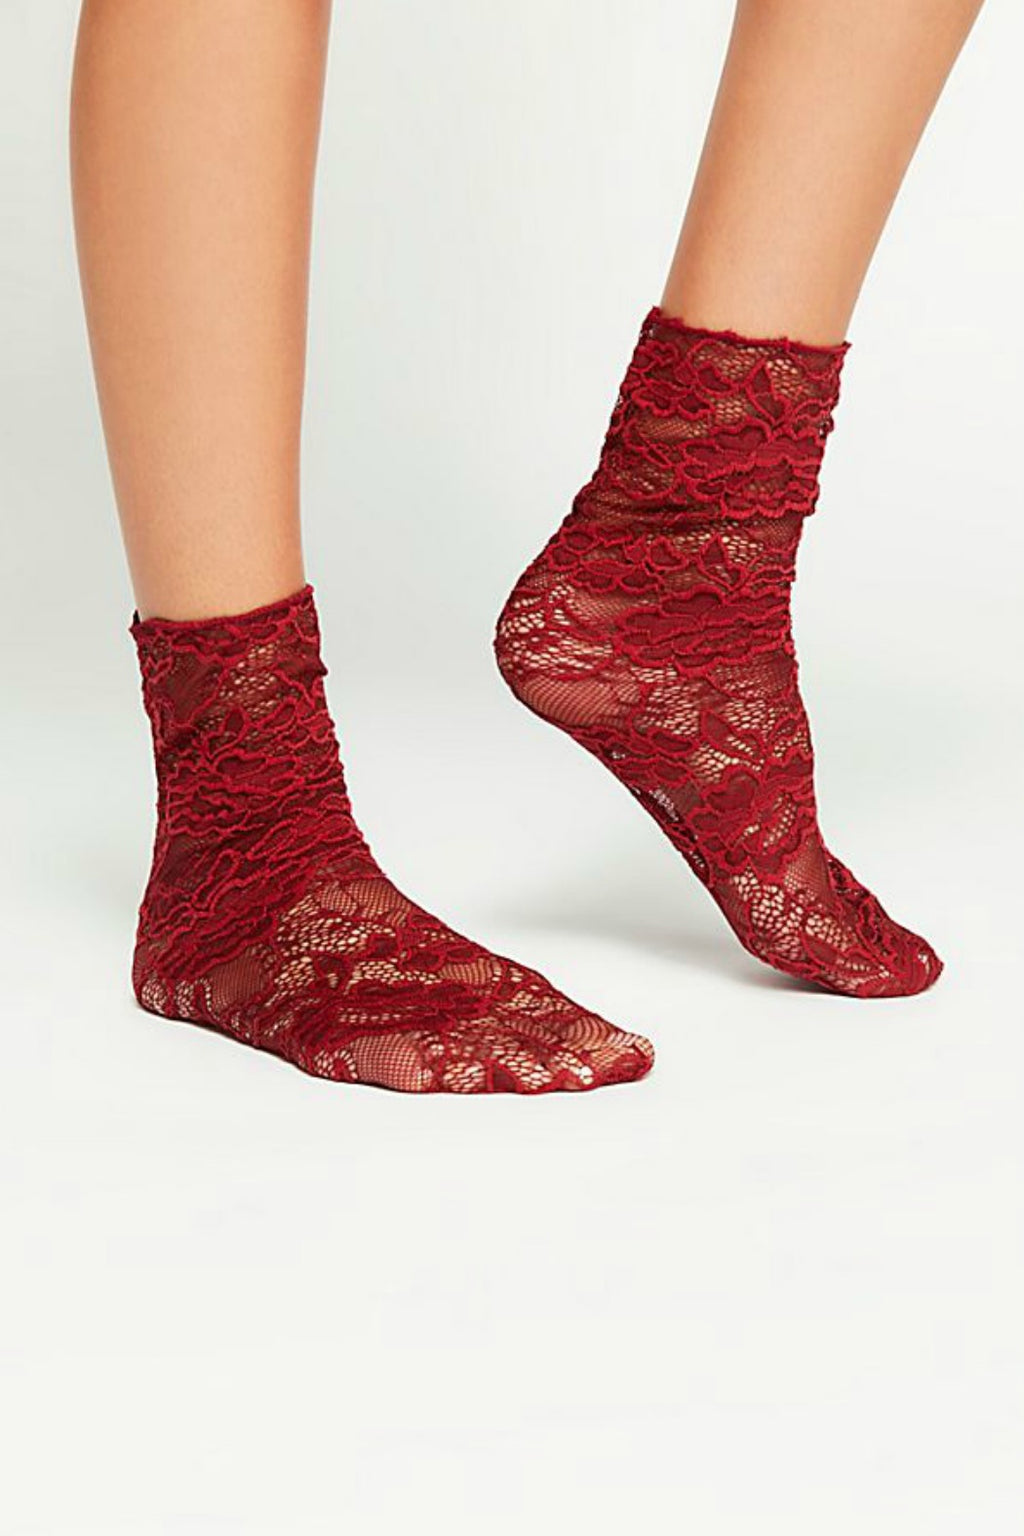 Free People Bella Lace Crew Sock - Wine